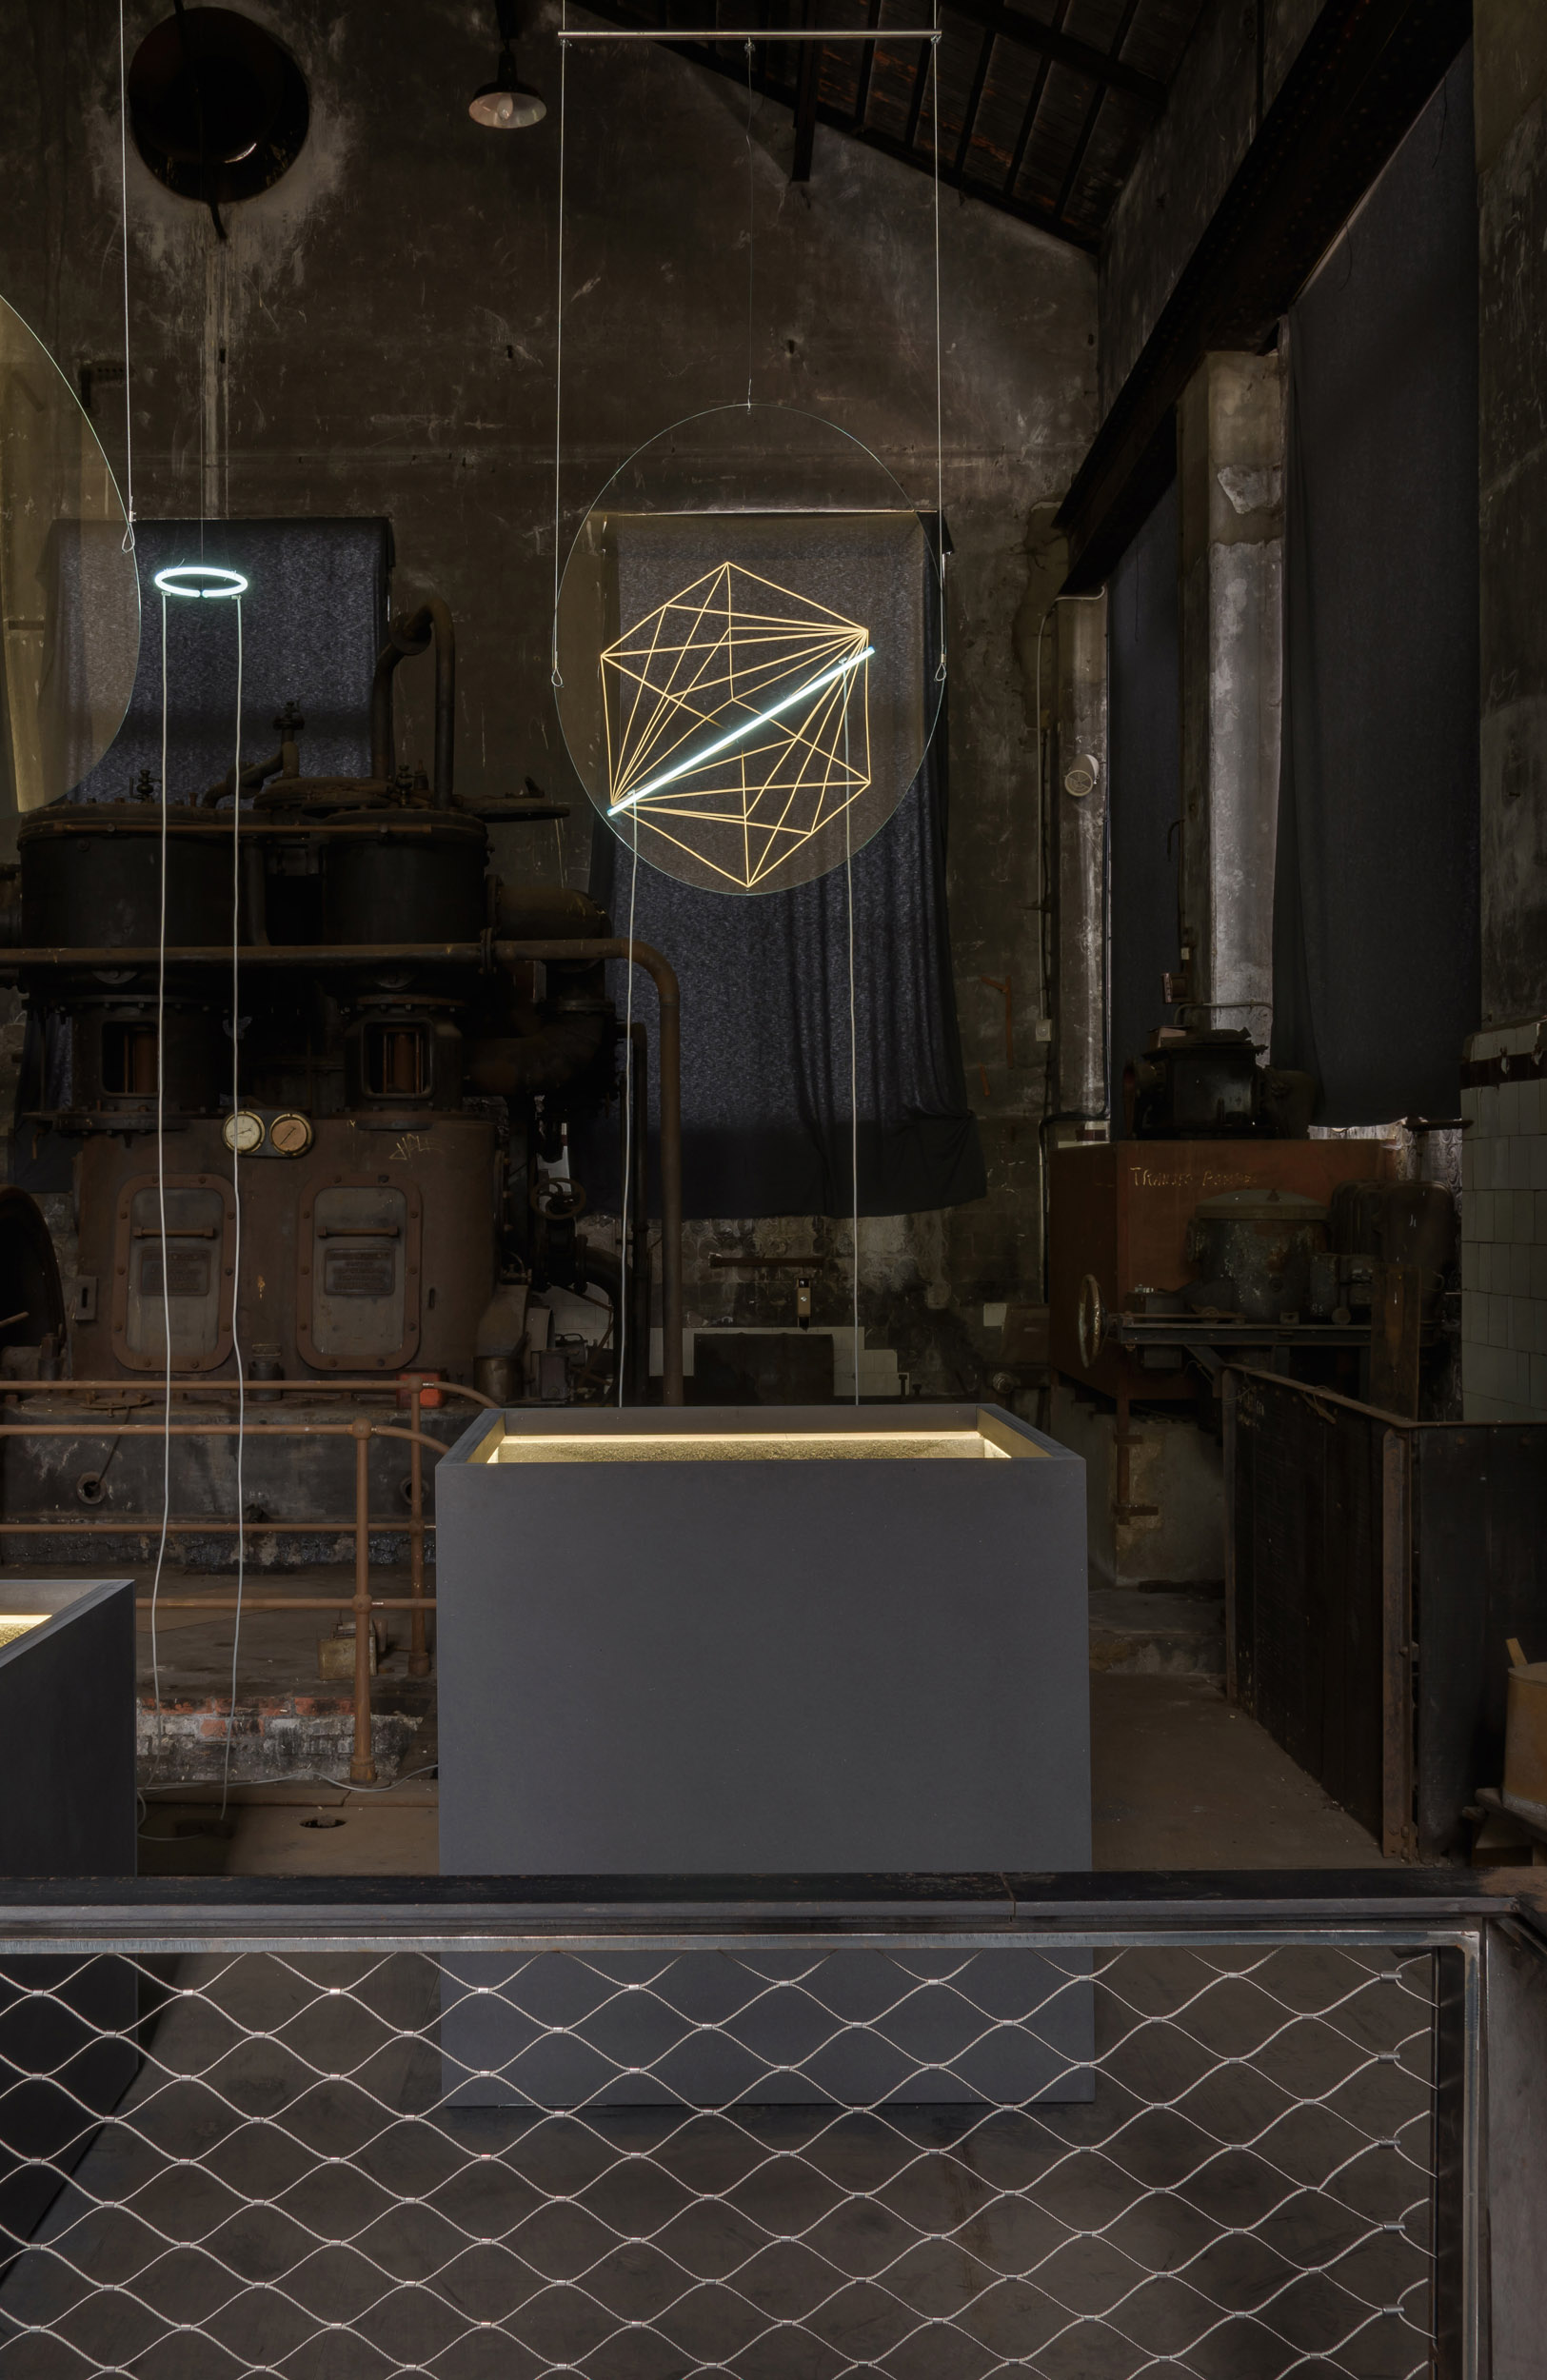 A cubic wireframe Luminary sculpture appears as a reflection around a strip of neon